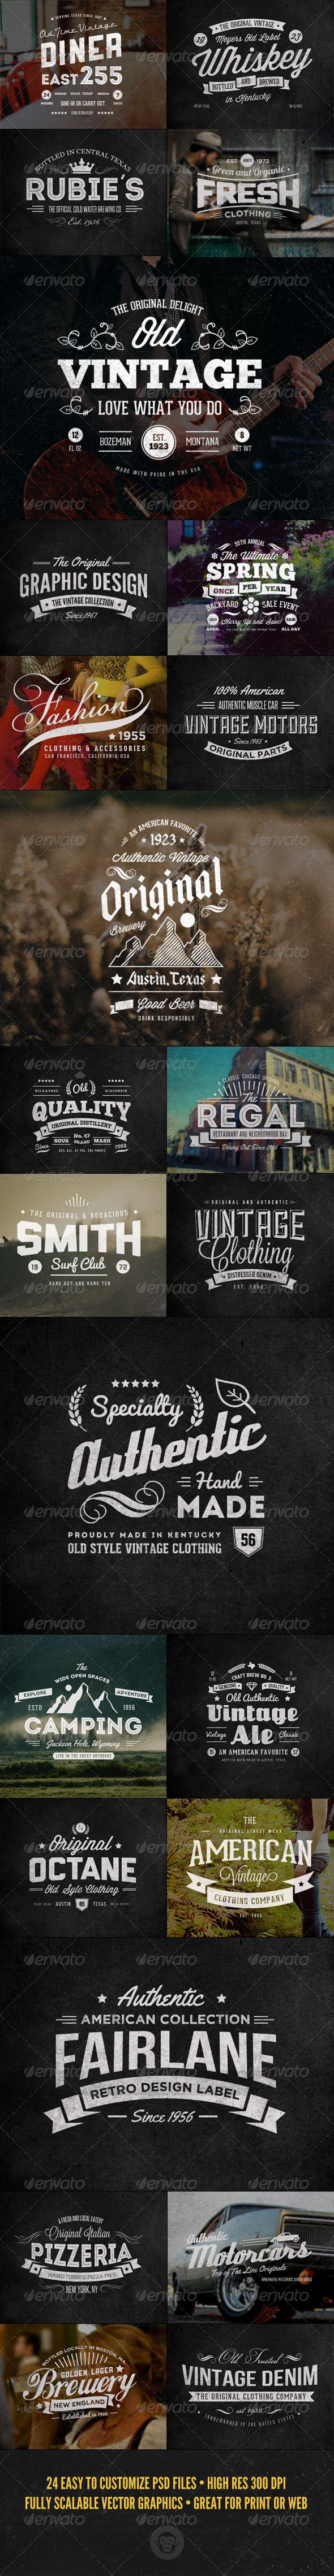 24 Vintage Labels and Logos Bundle Template | Buy and Download: http://graphicriver.net/item/24-vintage-labels-and-logos-bundle/7255445?WT.ac=category_thumb&WT.z_author=GraphicMonkee&ref=ksioks